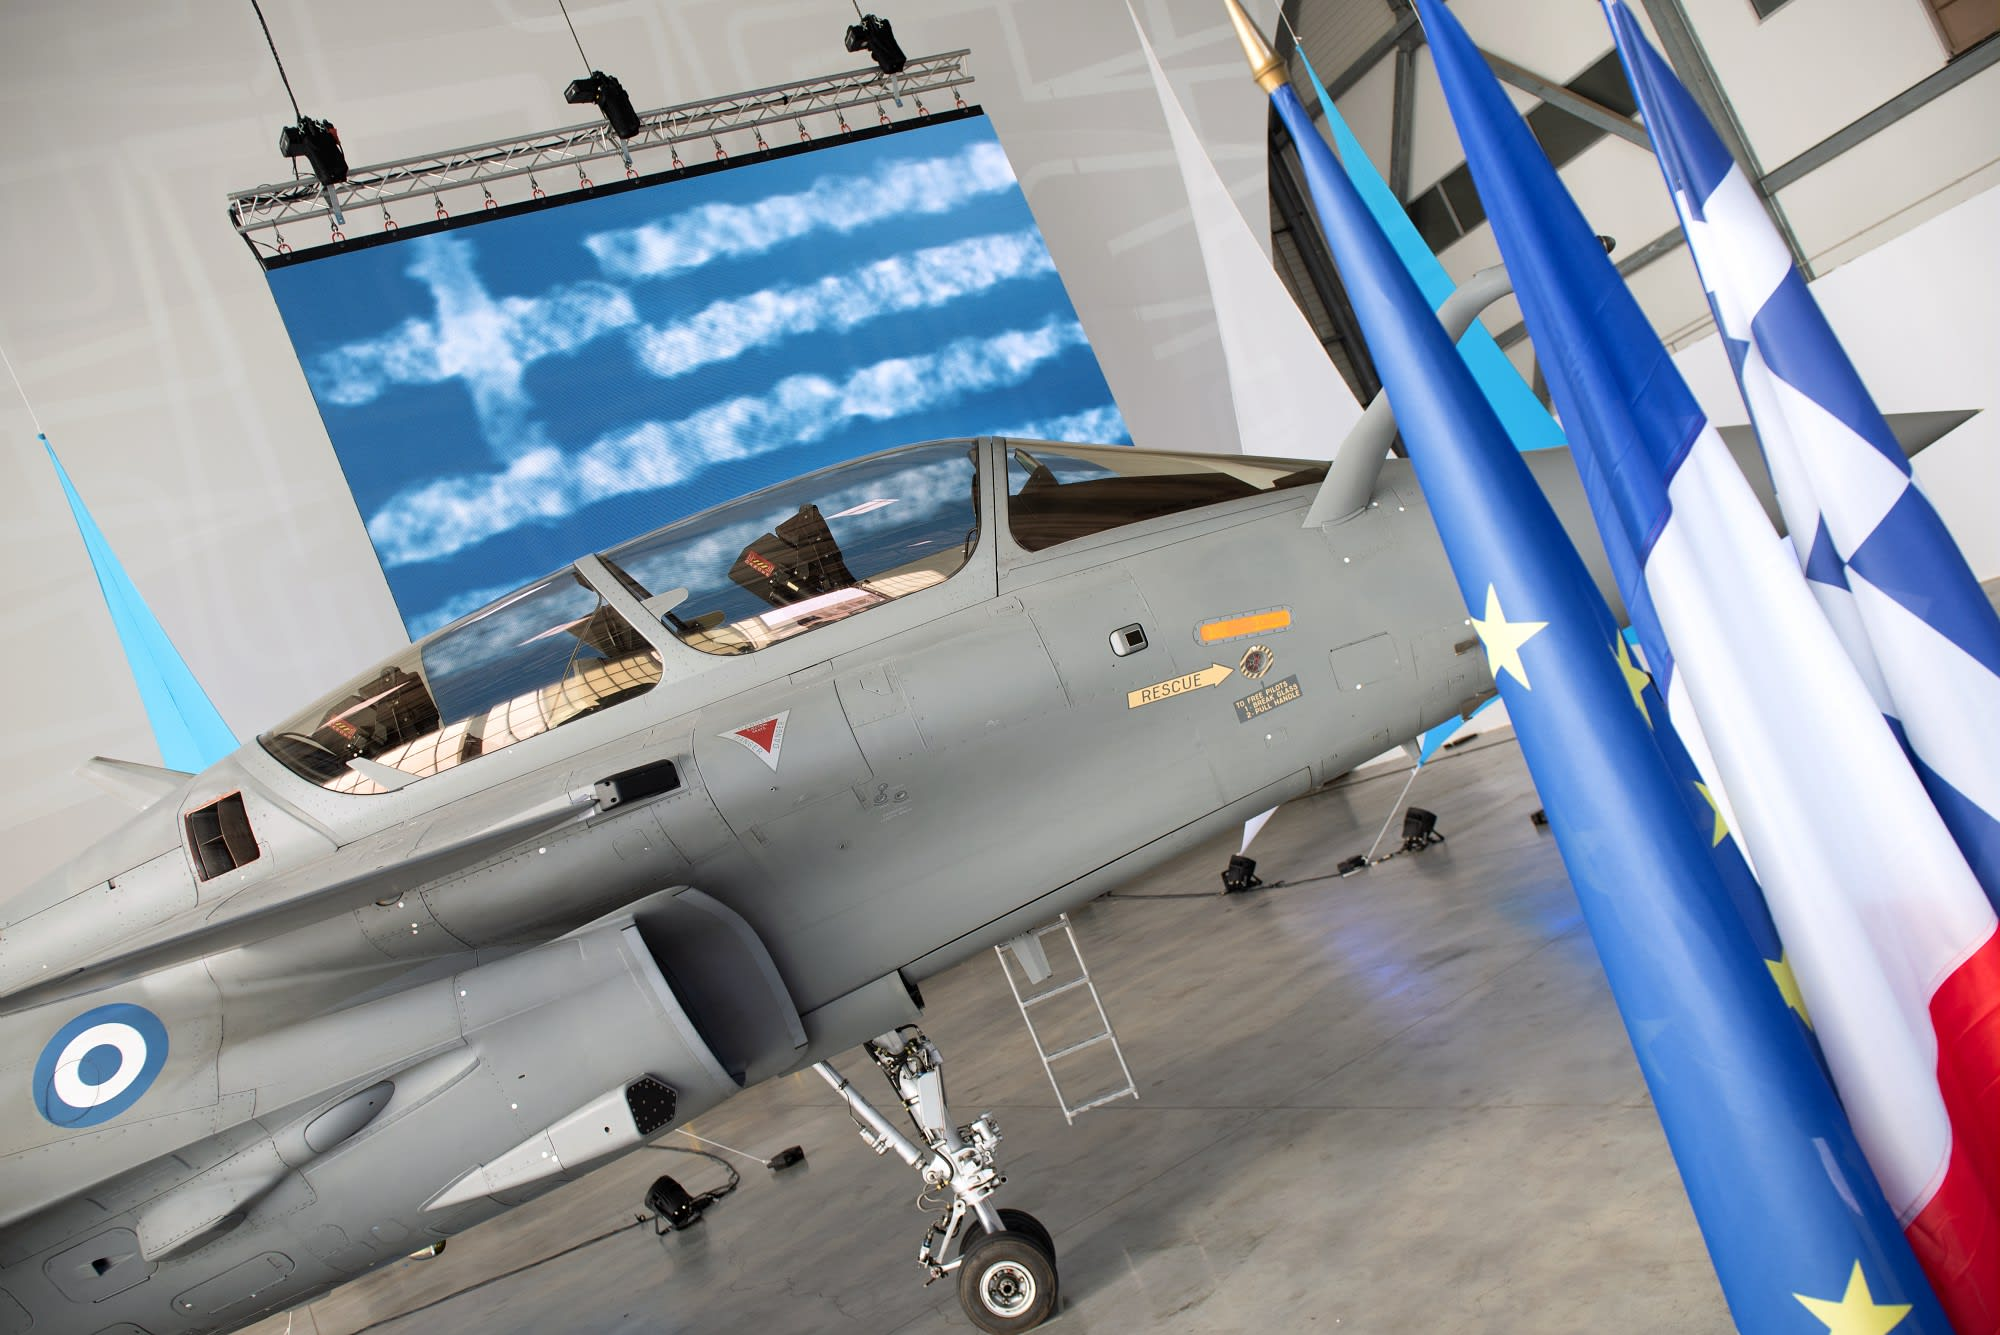 DASSAULT AVIATION delivers its first Rafale to Greece - Press kits